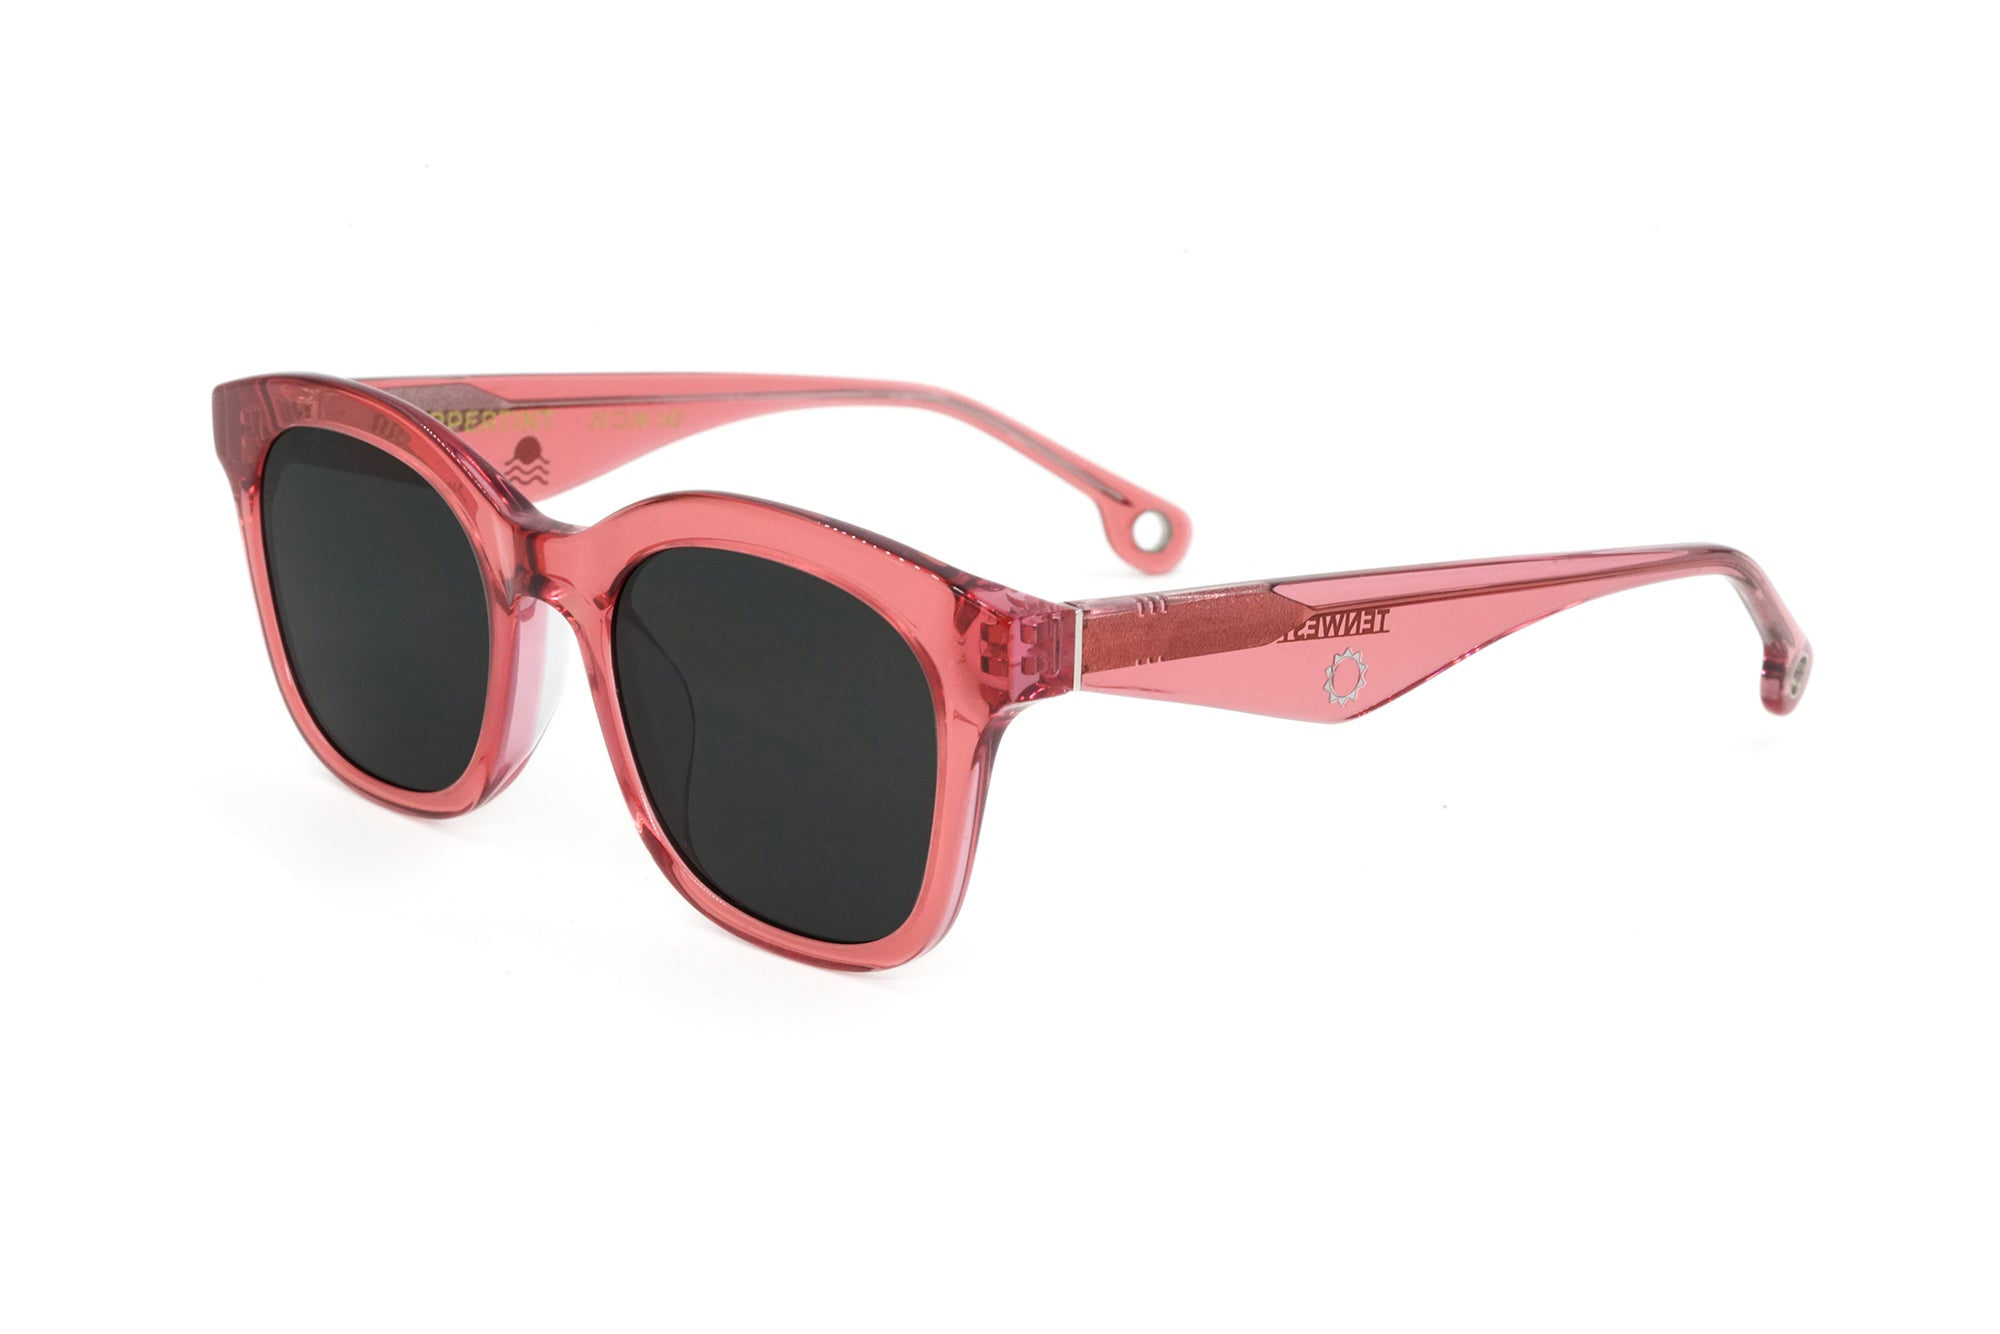 TenWest in Red - Peppertint - Designer sunglasses